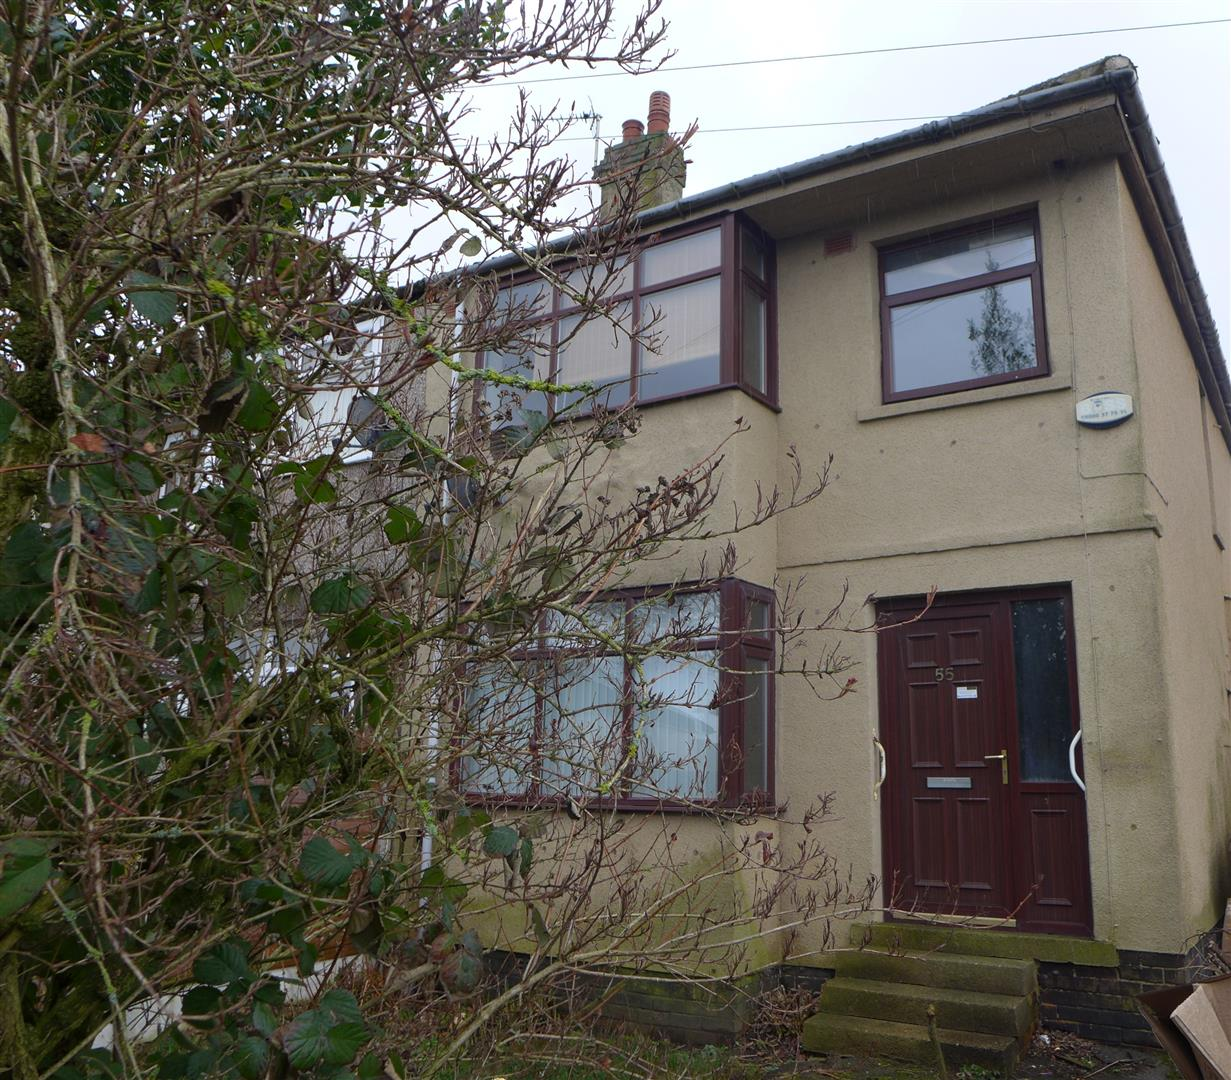 In Idle West Yorkshire: Brantwood Road, Heaton, Bradford, West Yorkshire, BD9 6PY